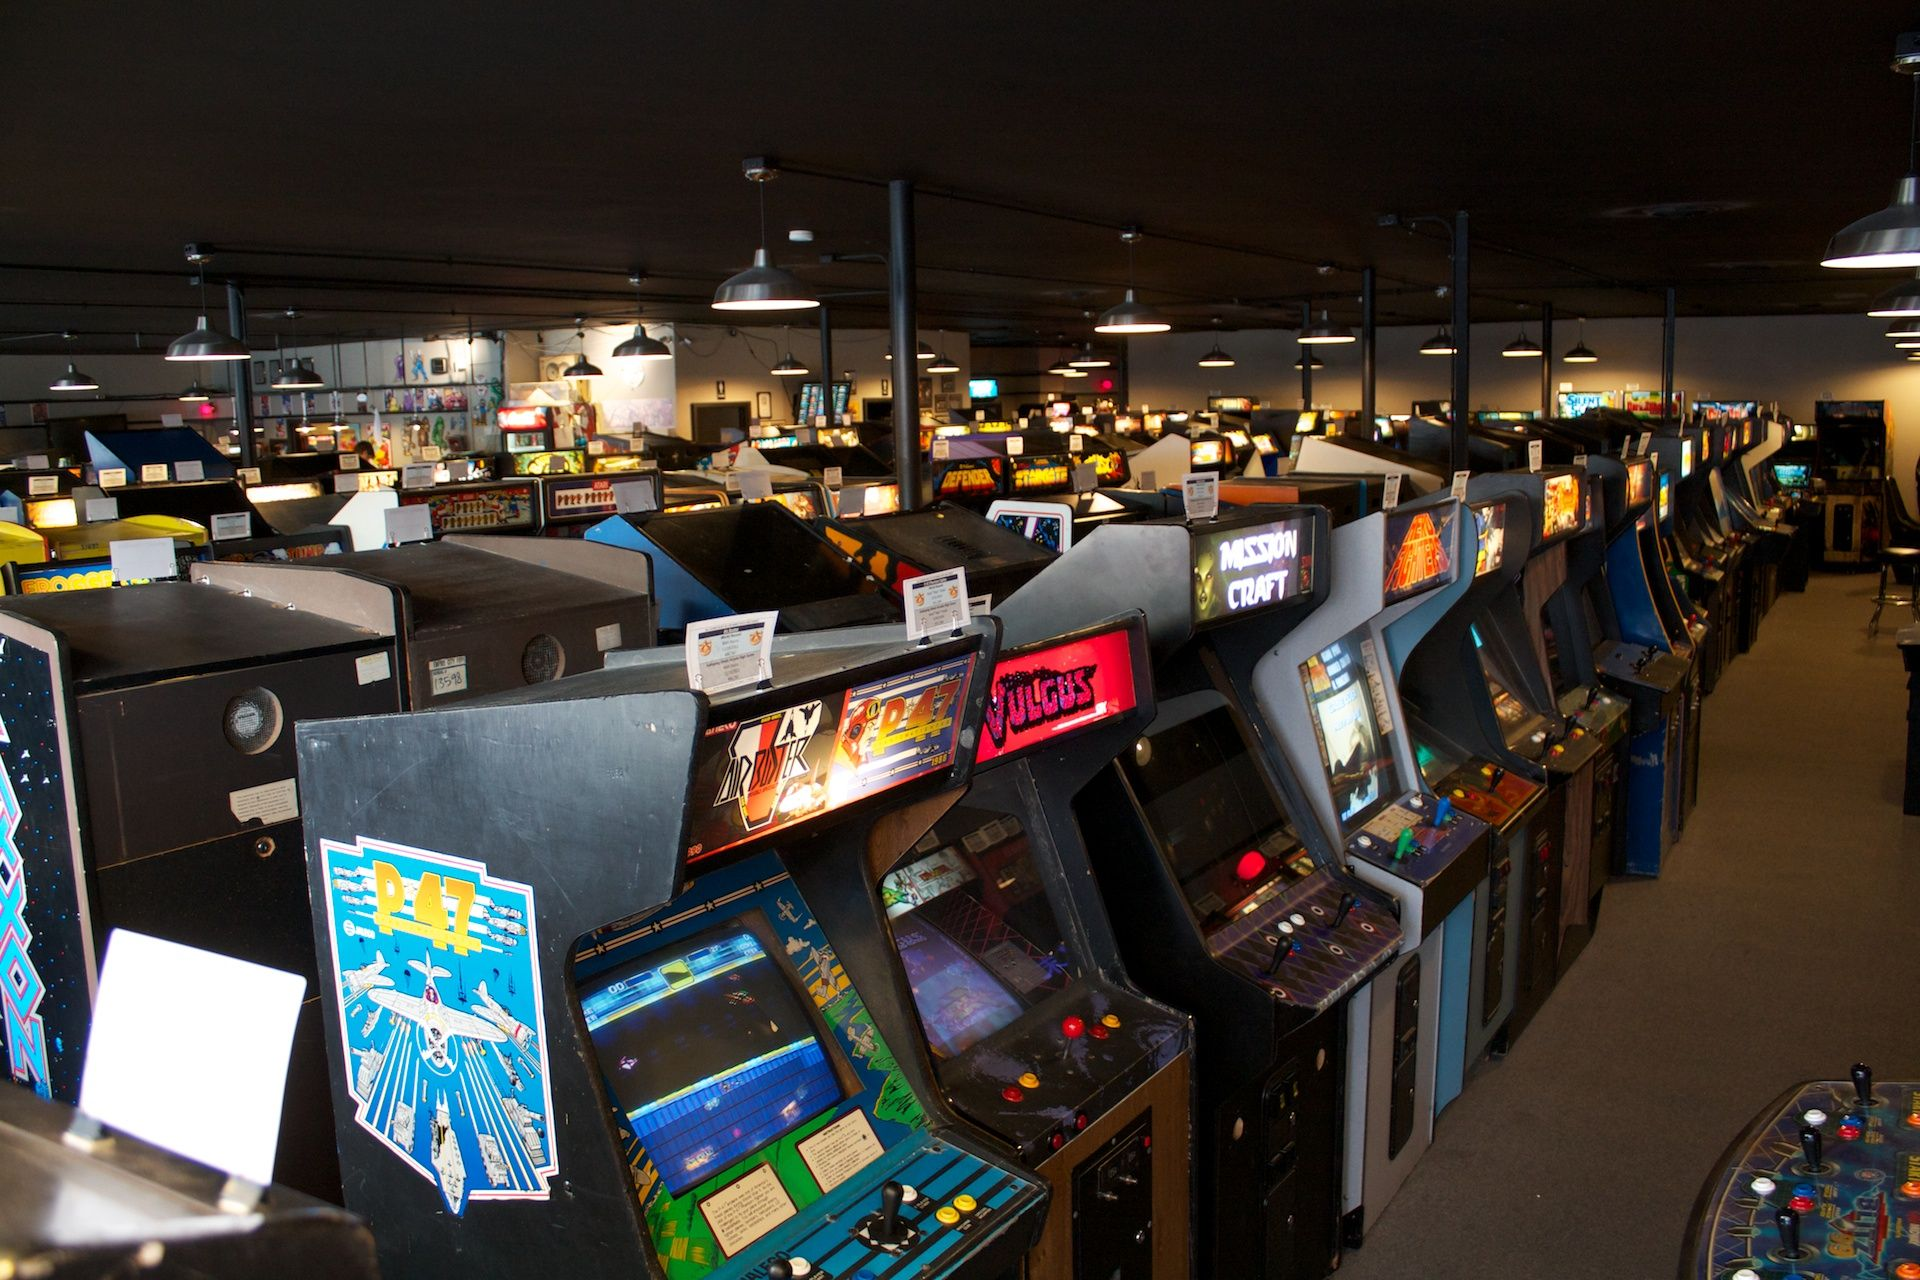 A Visit To Galloping Ghost The Largest Video Game Arcade In The Usa